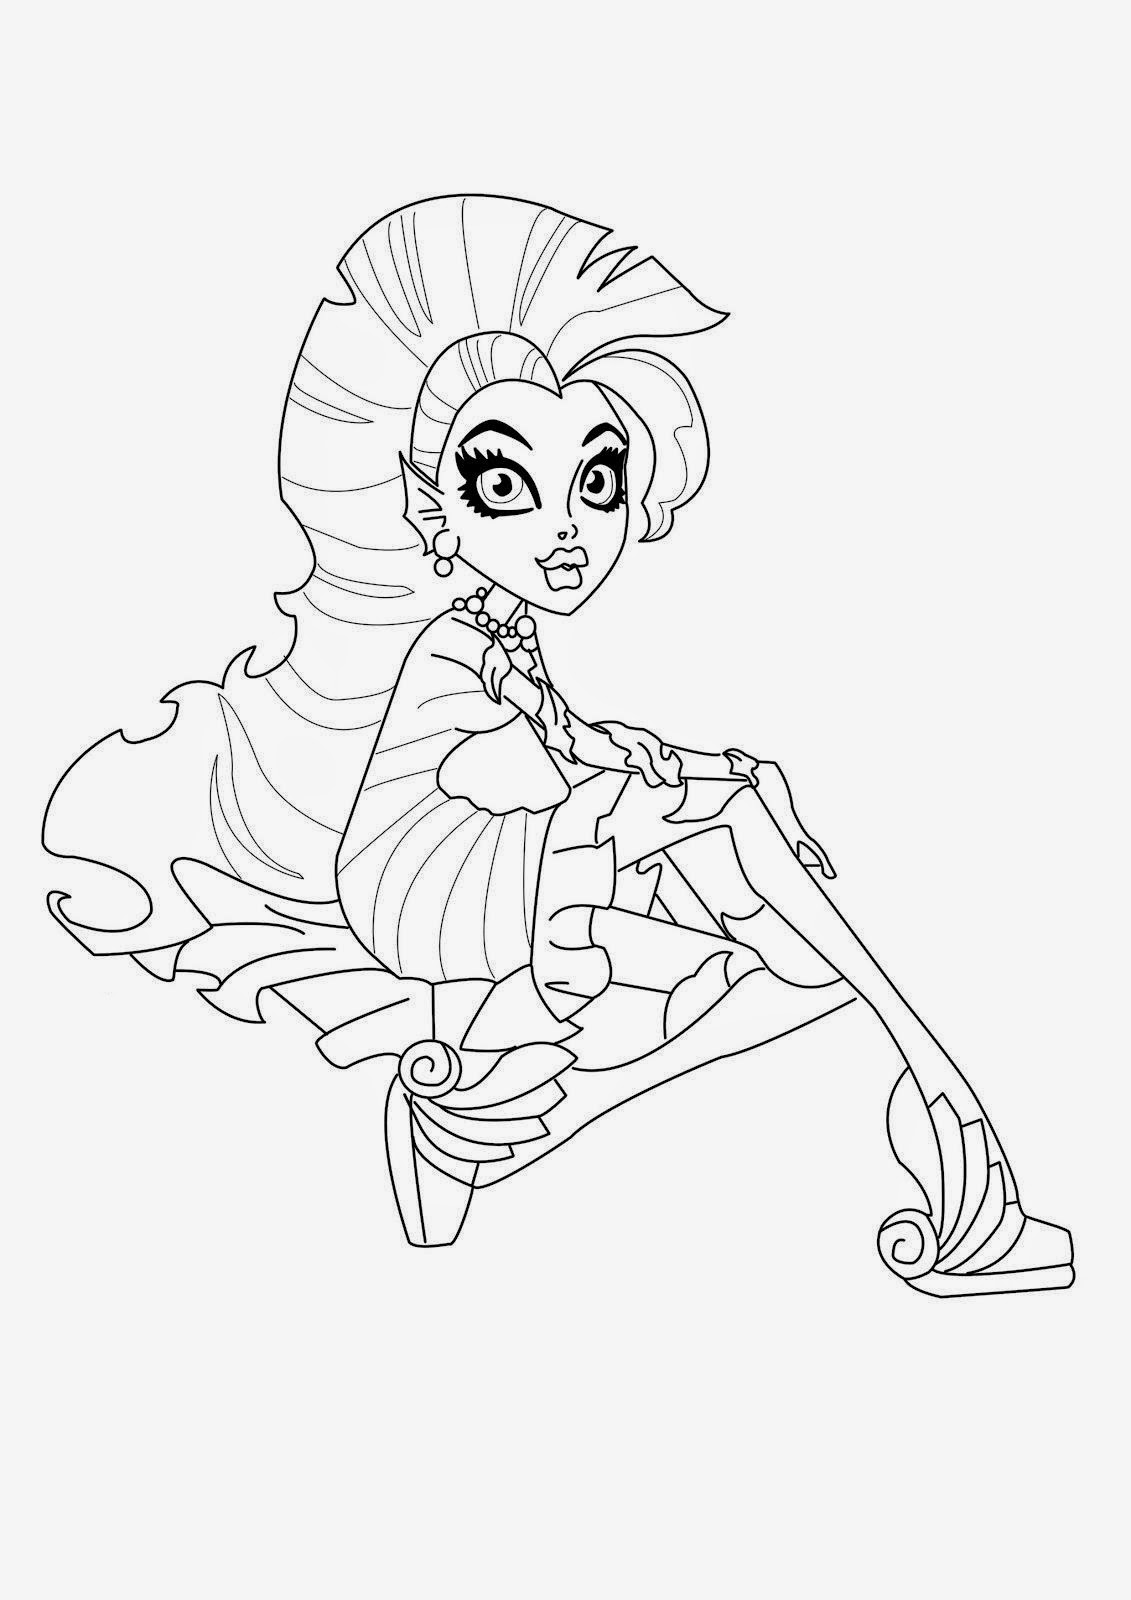 free colouring pages monster high monster high catty noir colouring pages coloring pages monster high free colouring pages